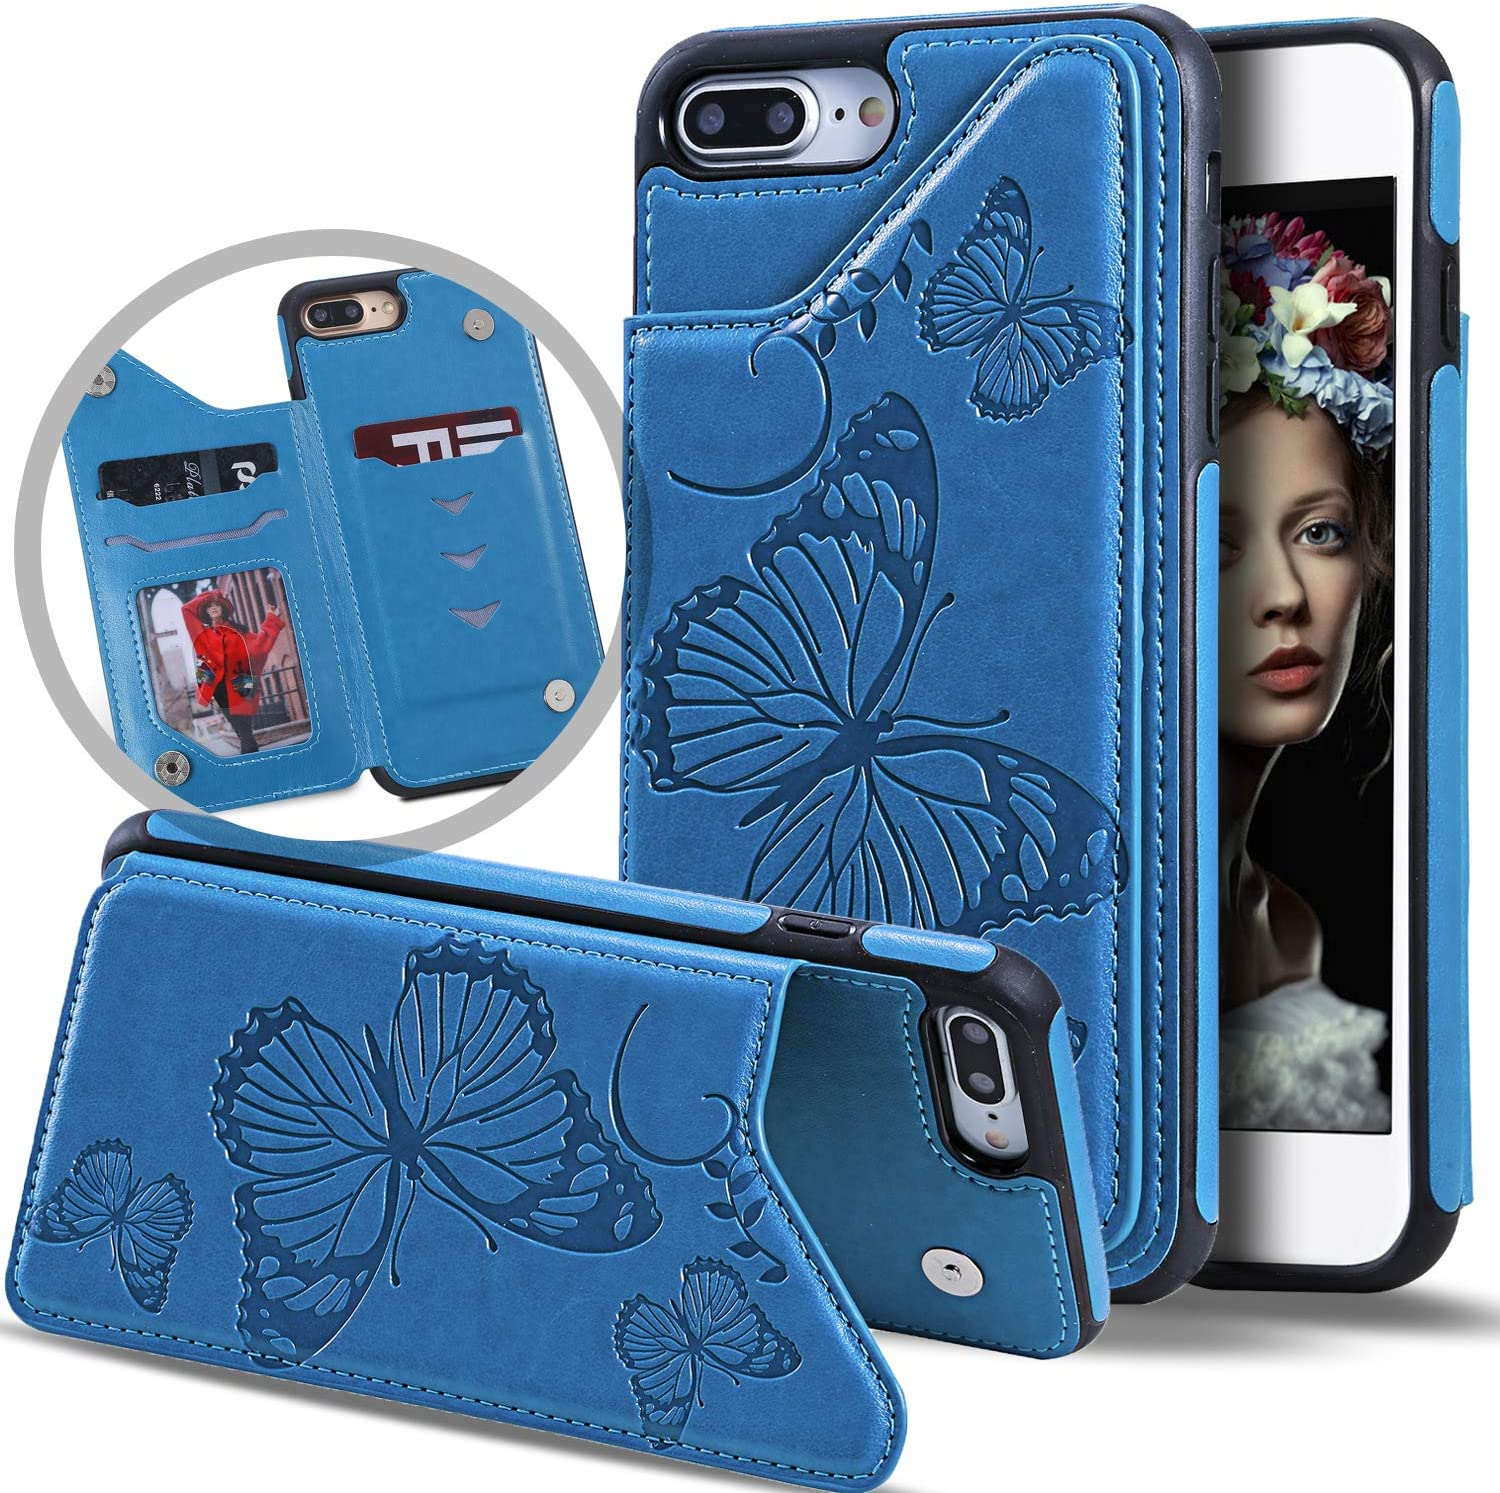 Vodico iPhone 8 Plus Wallet Case for Women,iPhone 7 Plus Case with Card Holder, Cute Girly Slim Folio Flip Butterfly Leather Magnetic Clasp Purse Case with Credit Card Slots&Stand for Girls (Blue)